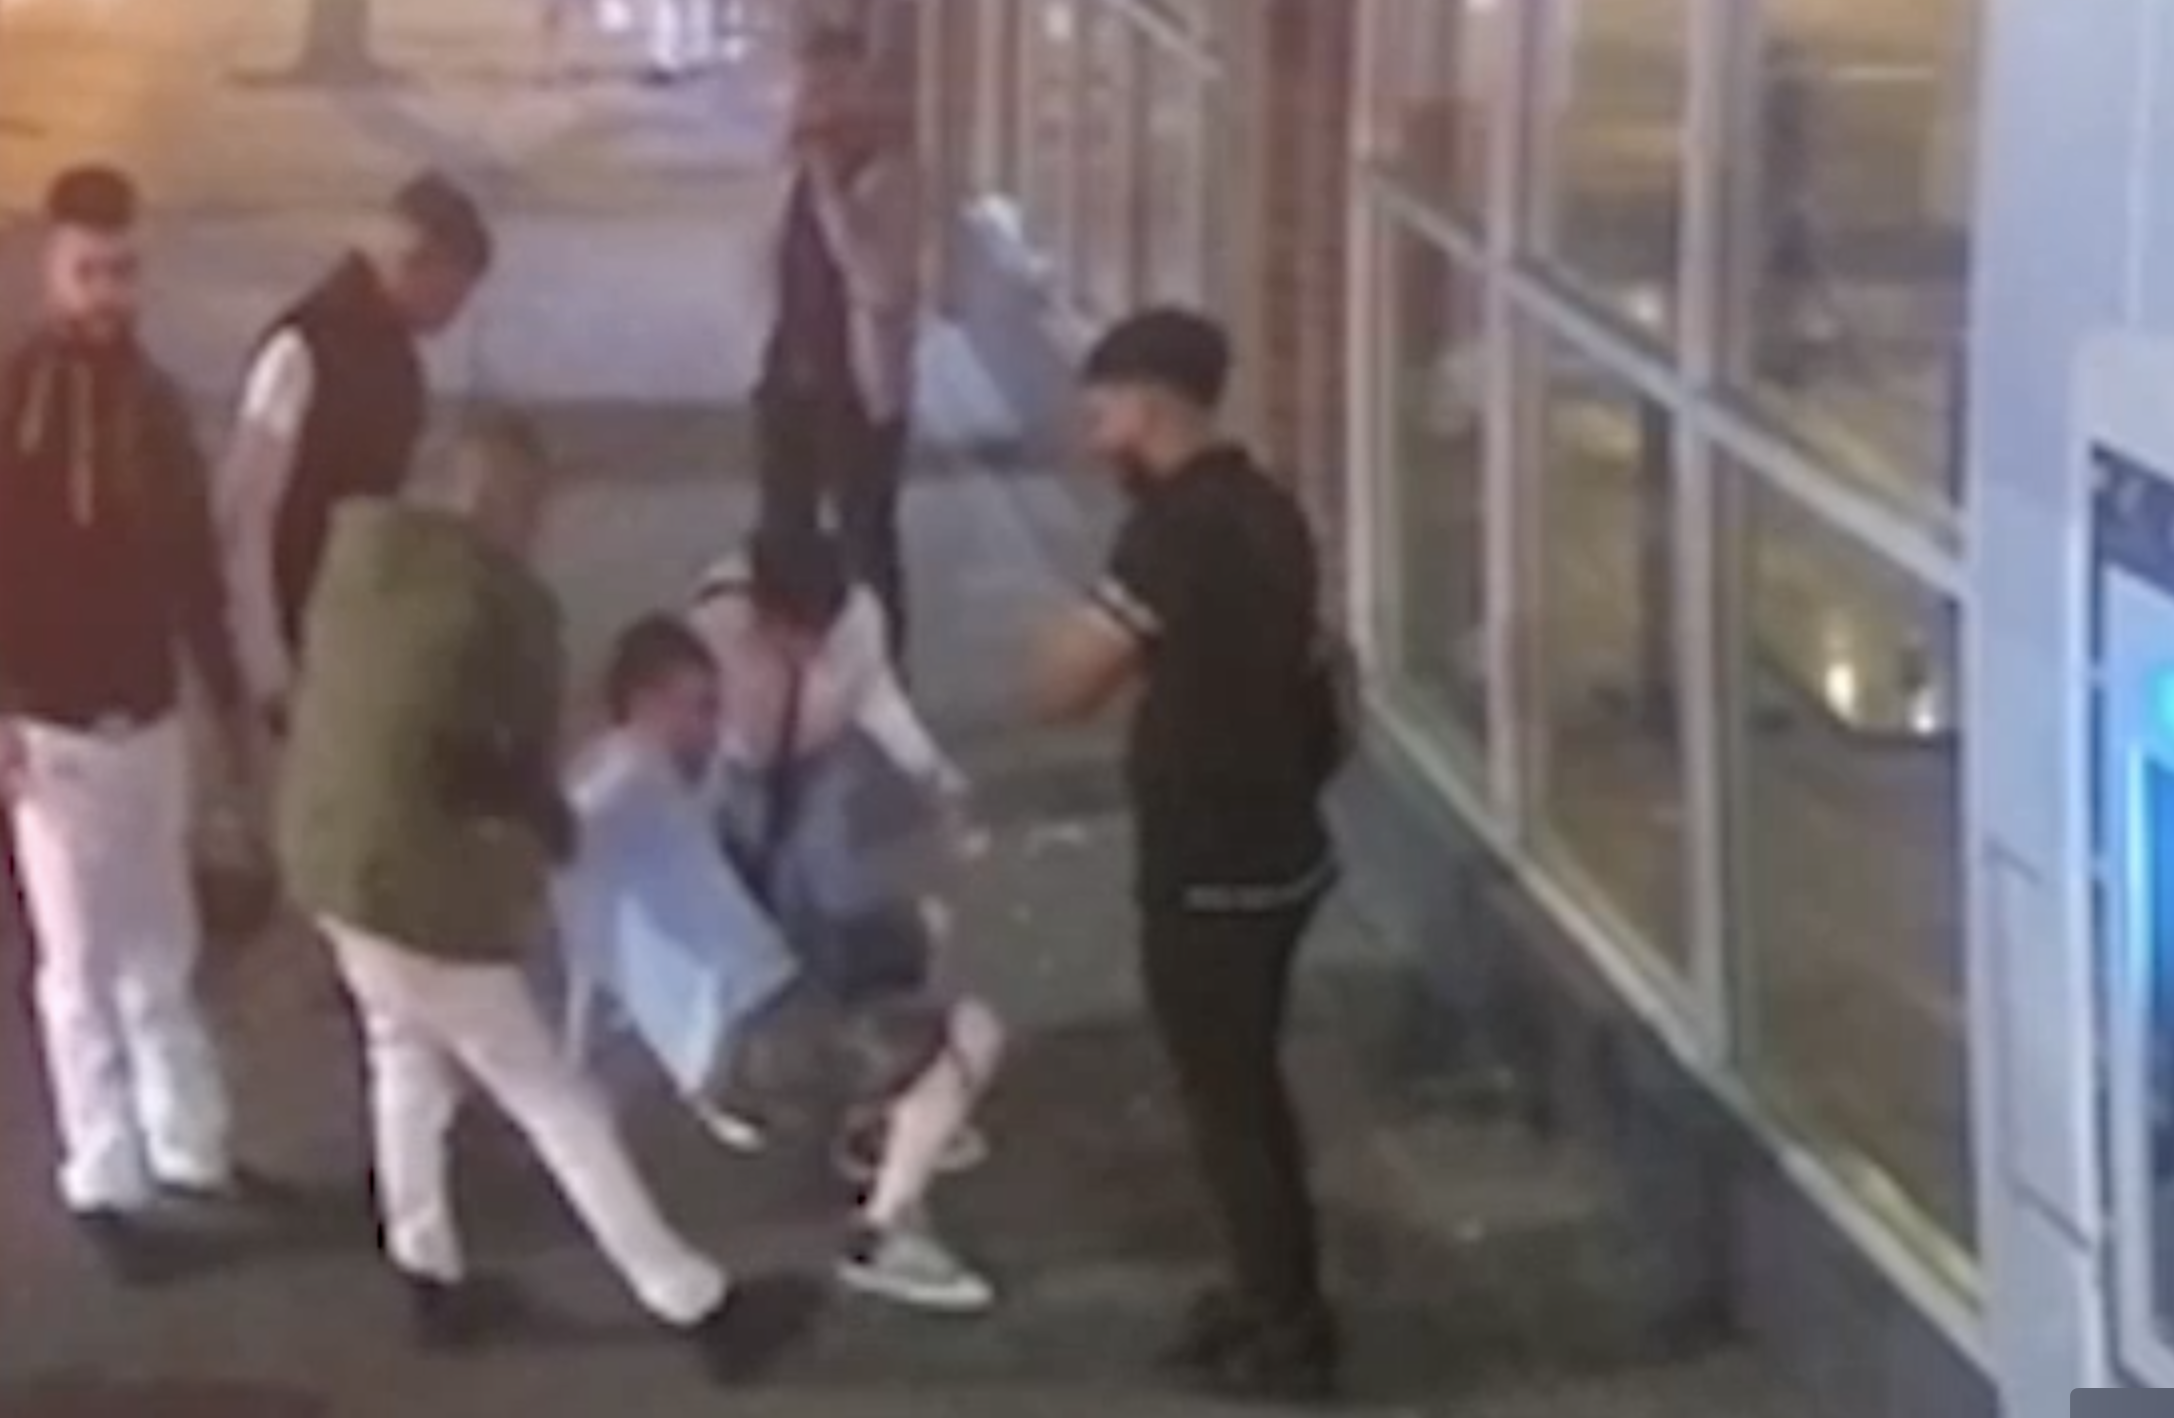 Shocking video shows South Asian young men attack and rob a passerby in downtown Vancouver